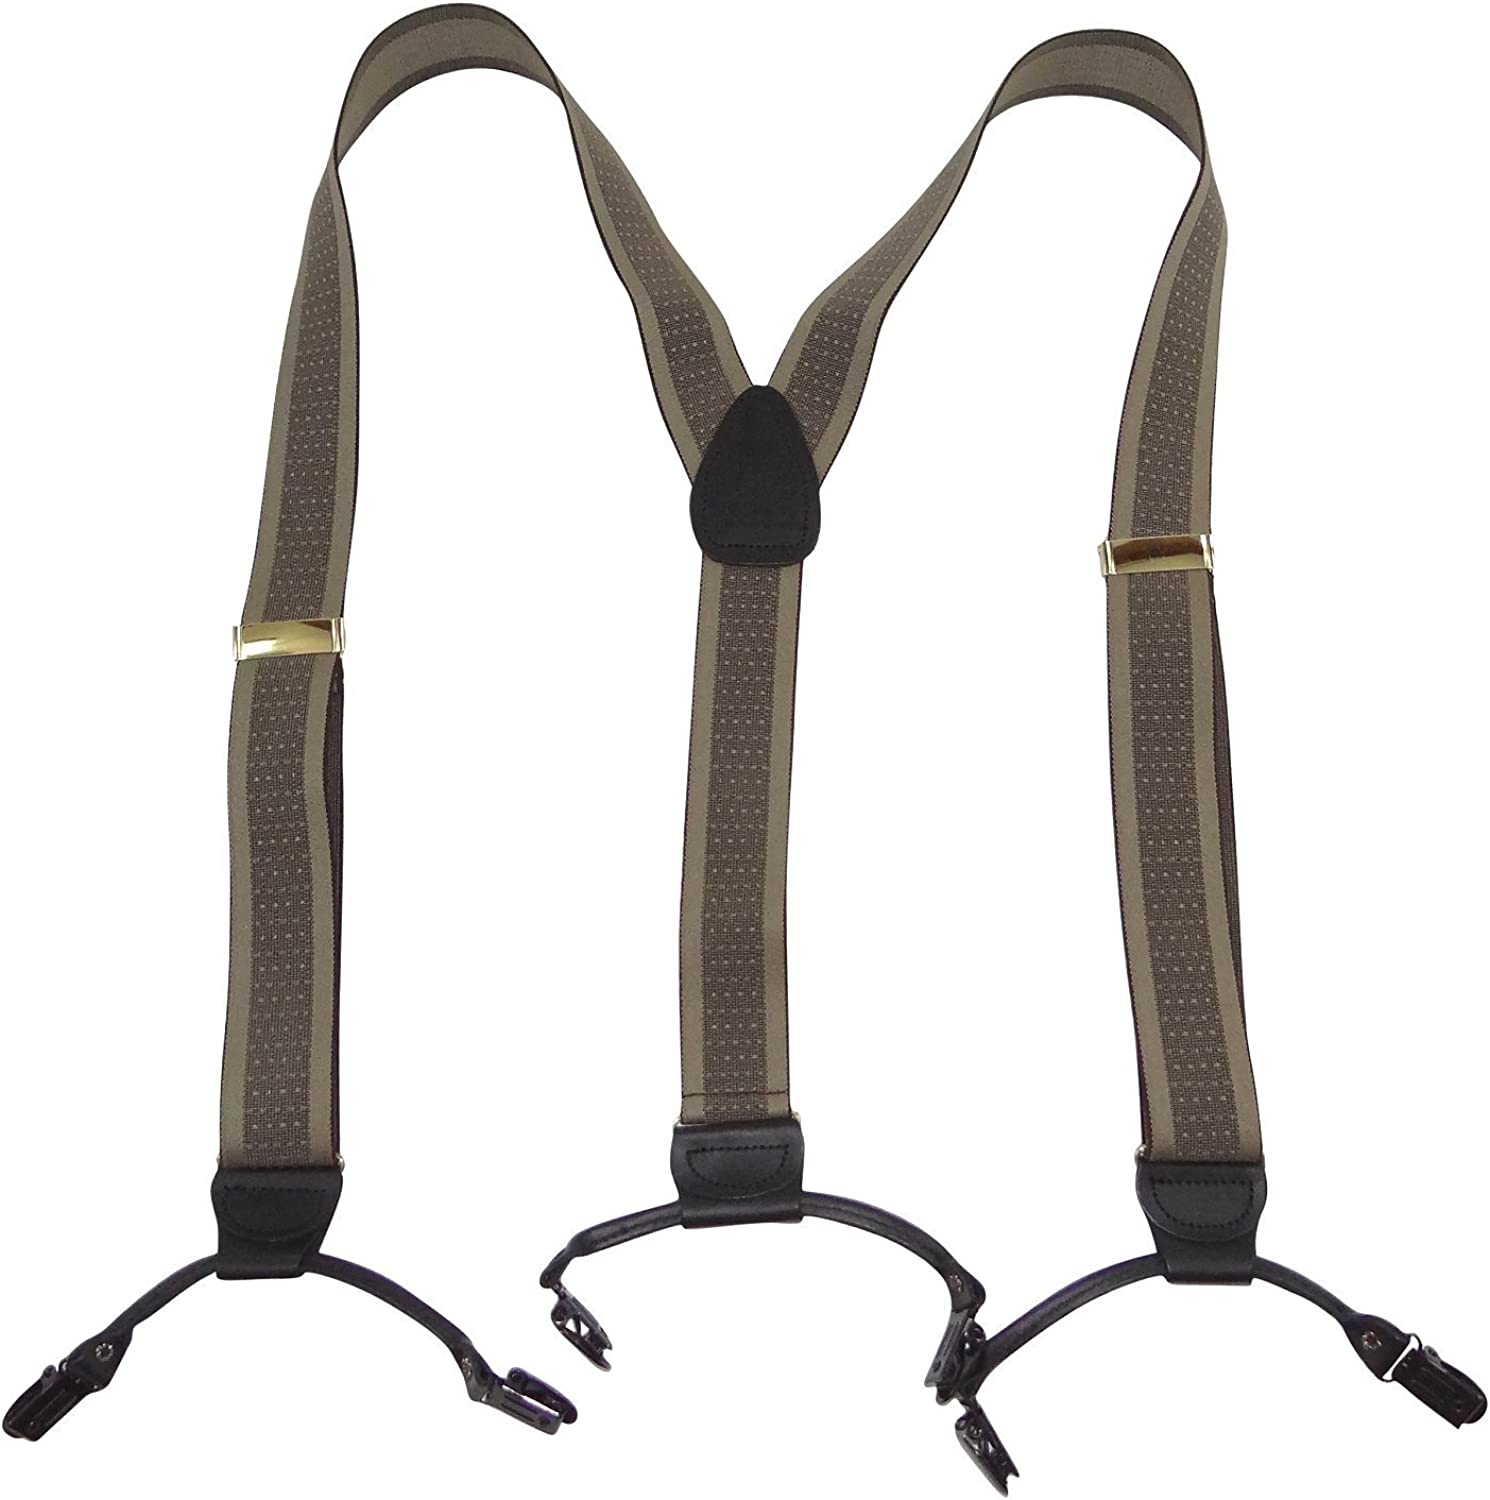 Holdup Memphis Mall Brand Tan and Taupe Max 89% OFF Weave Jacquard Double-Up Suspenders w